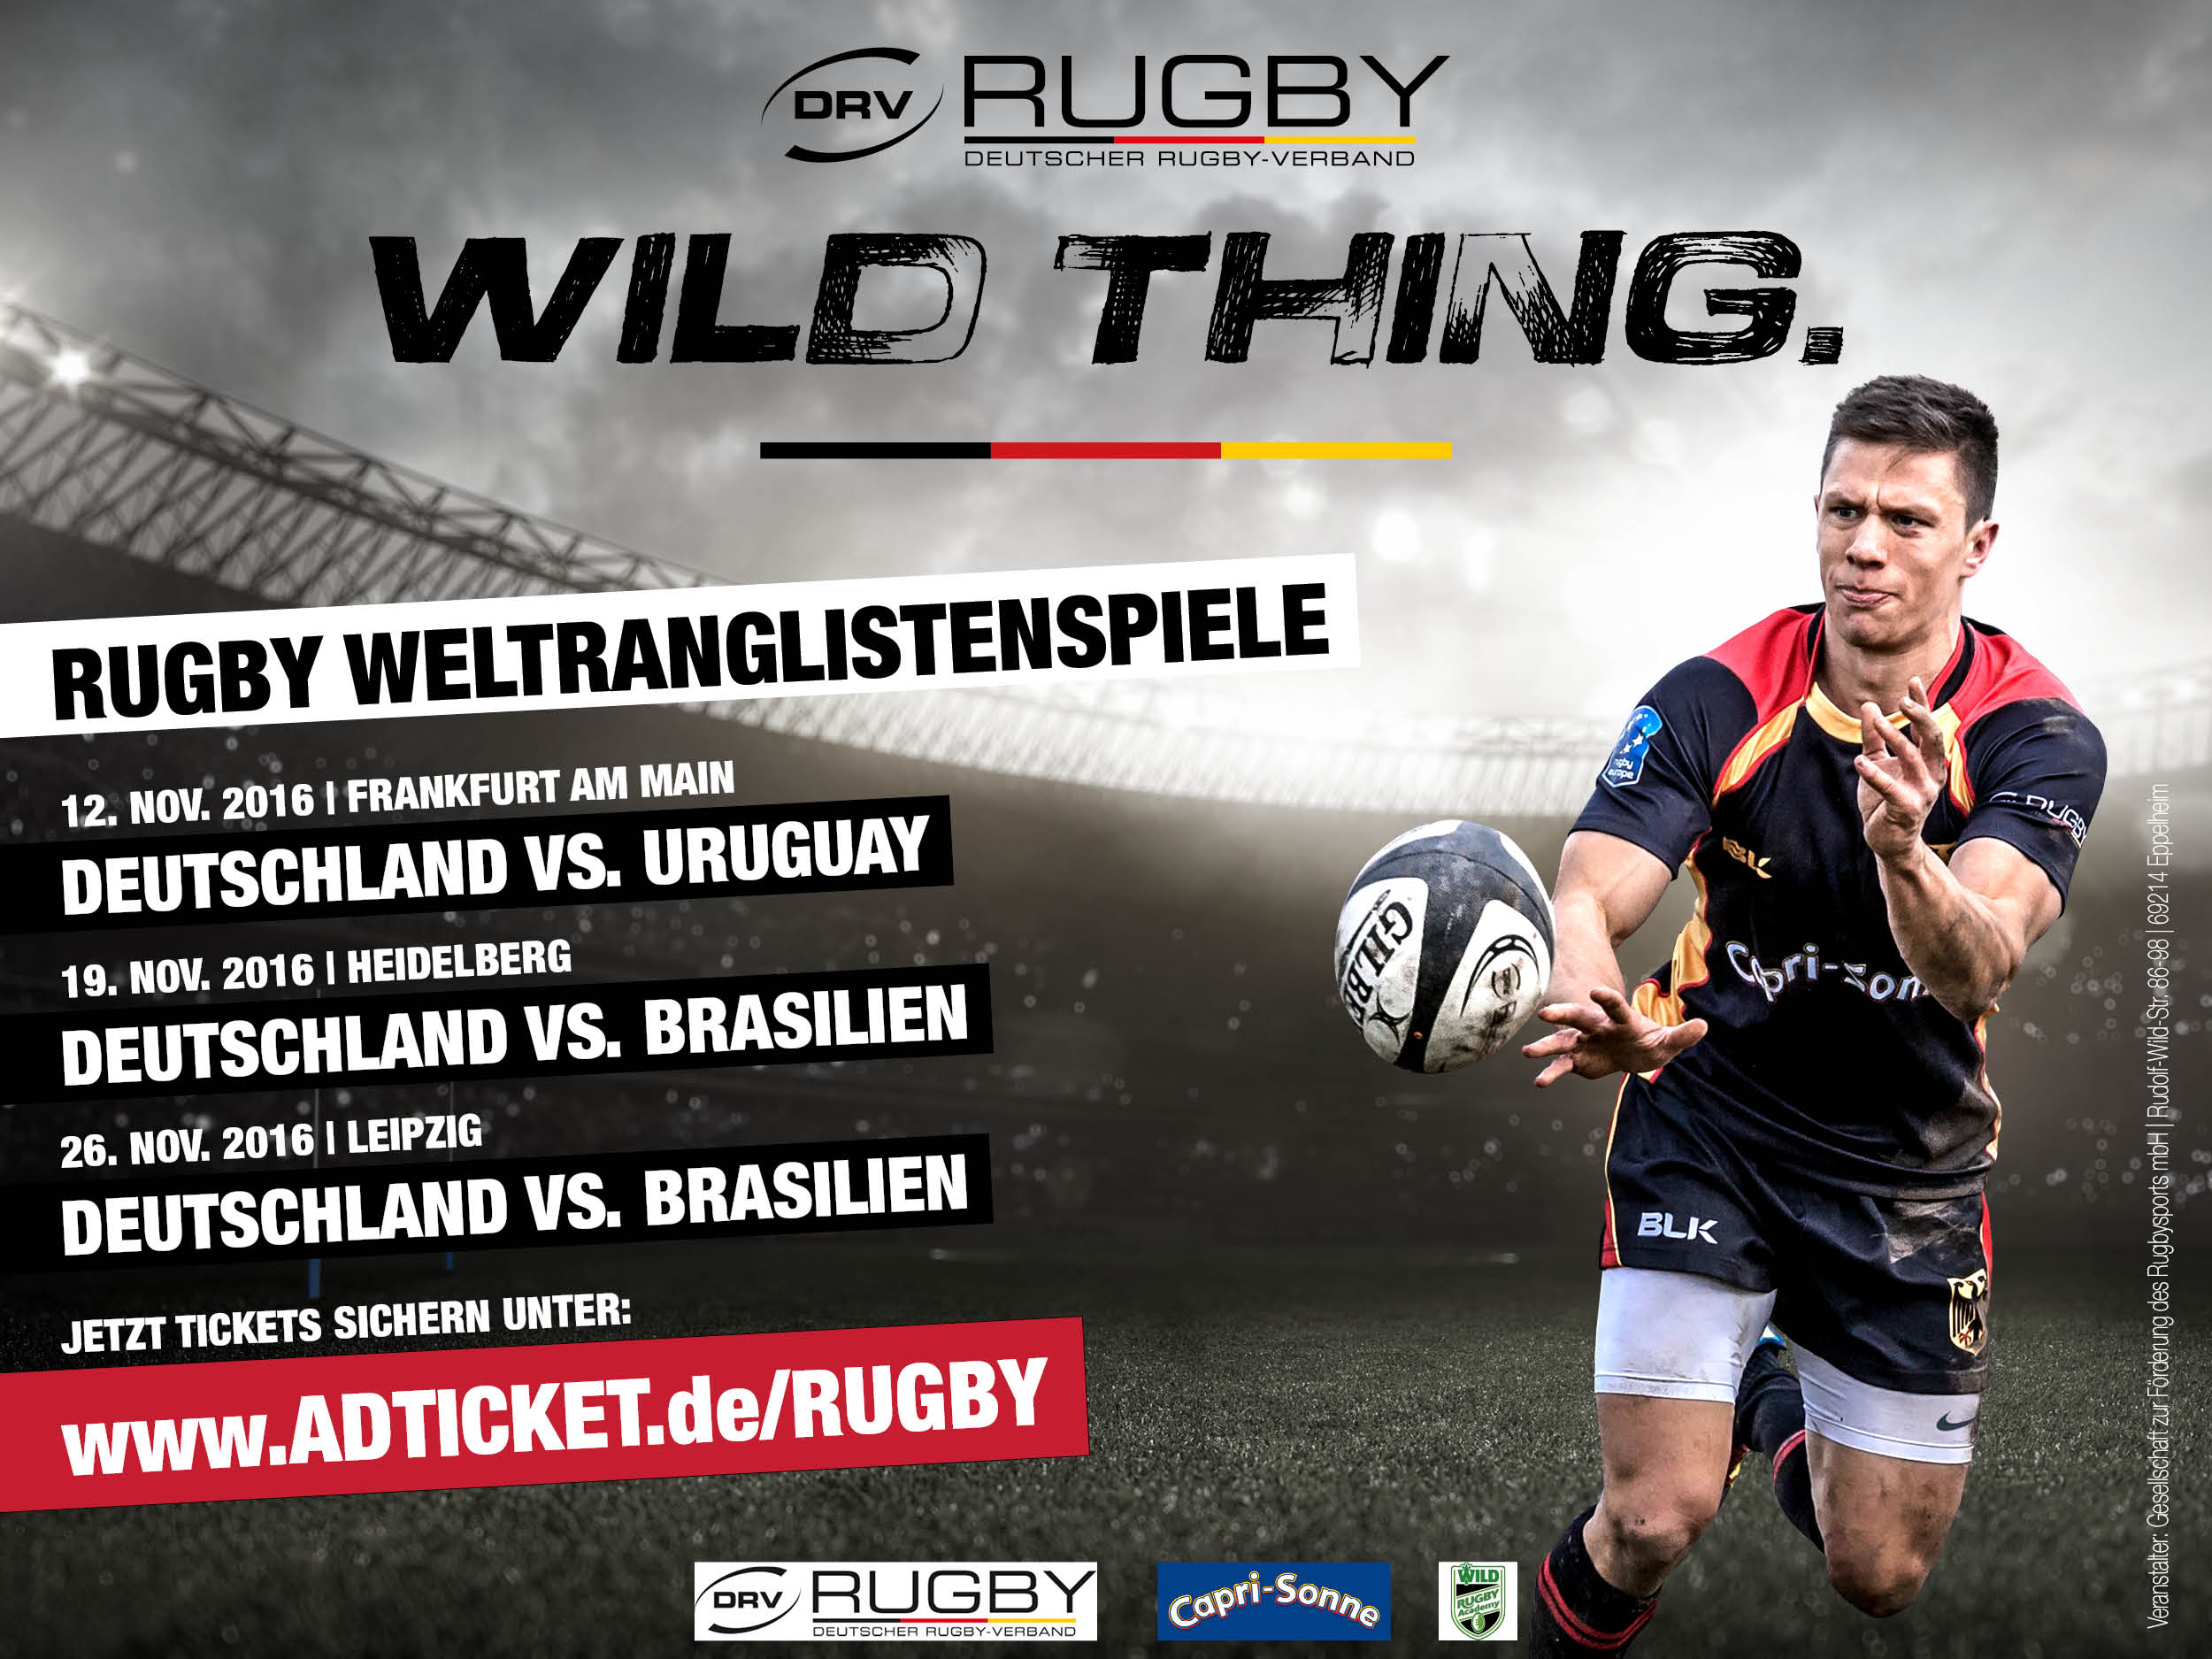 Rugby 900x1200_Alle